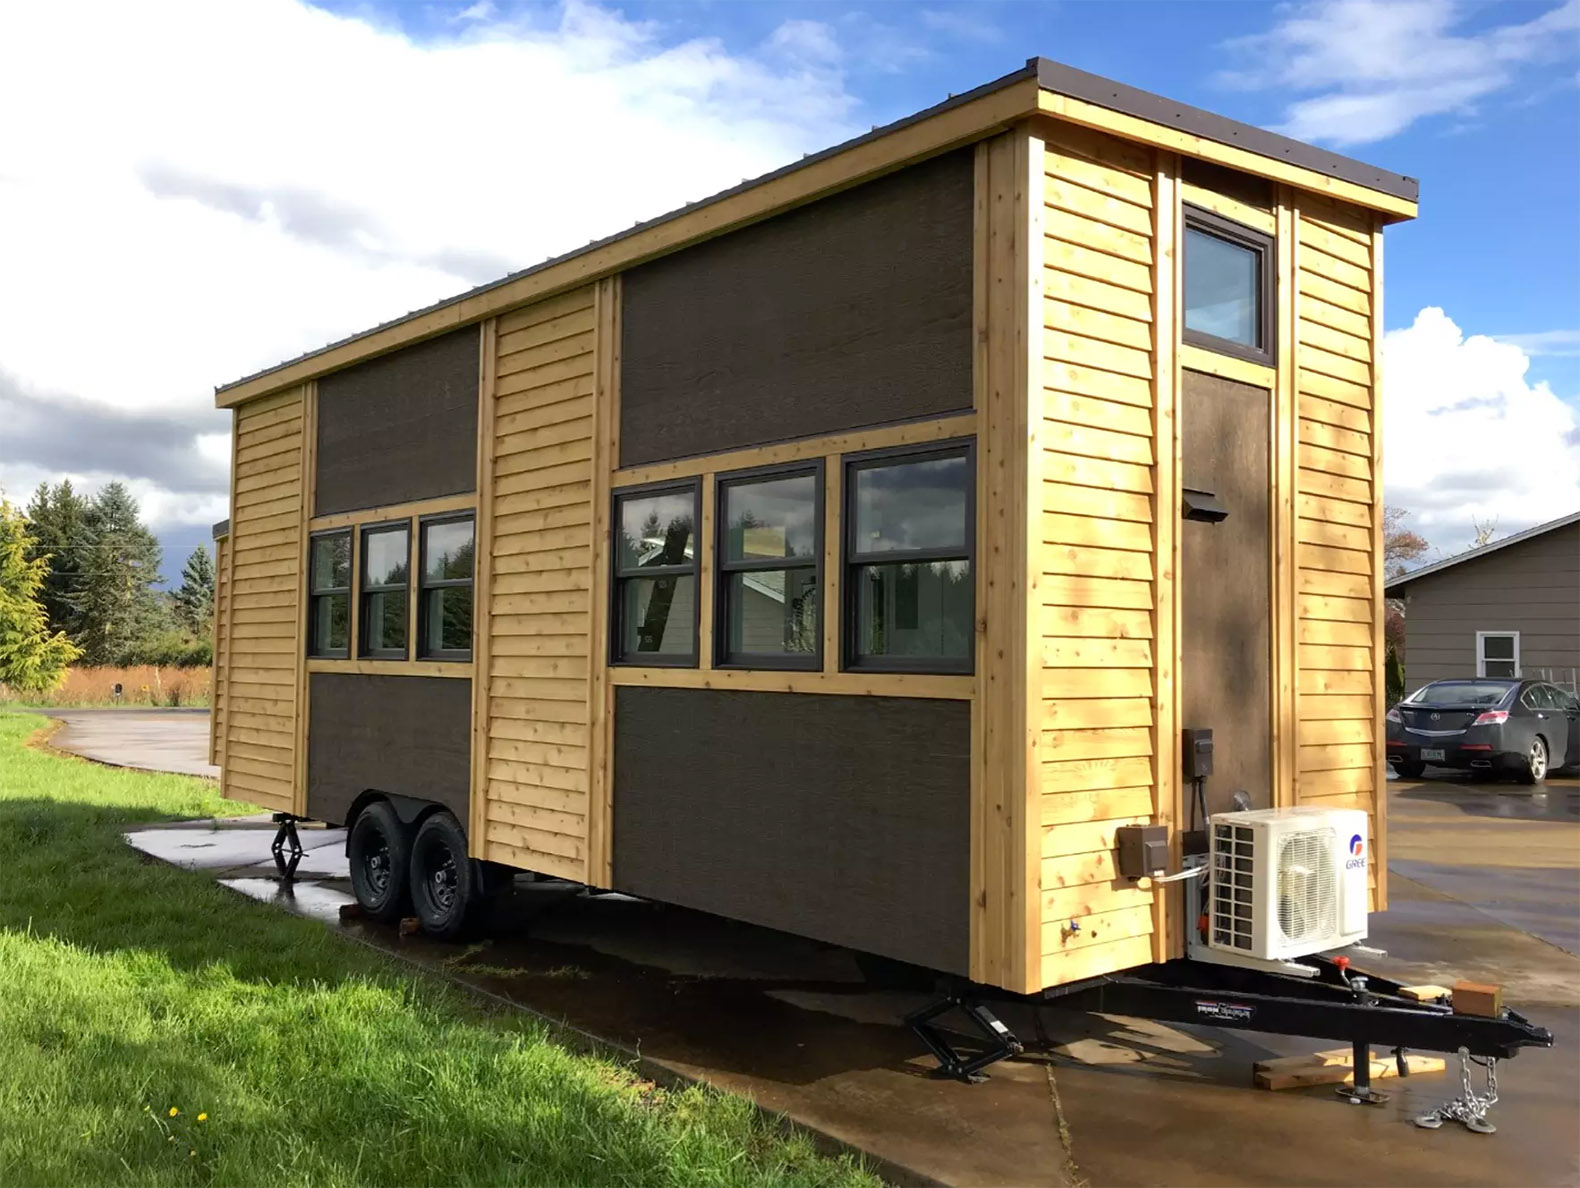 Tiny house inhabitat green design innovation for Cost to build a house in indiana